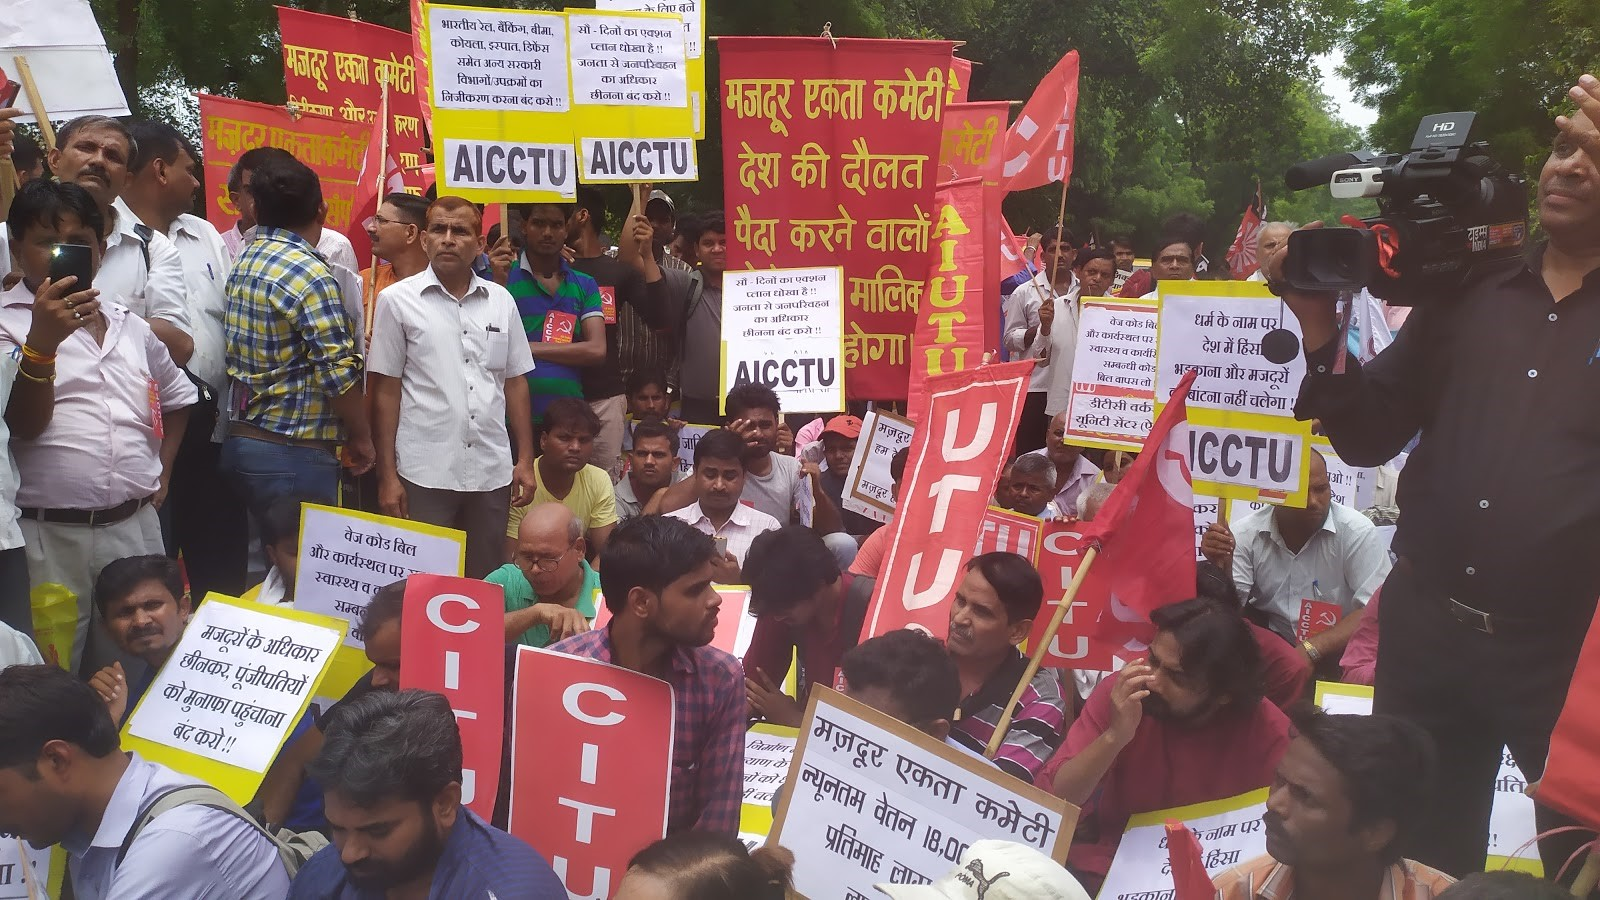 Trade Unions protest against codification of labour laws